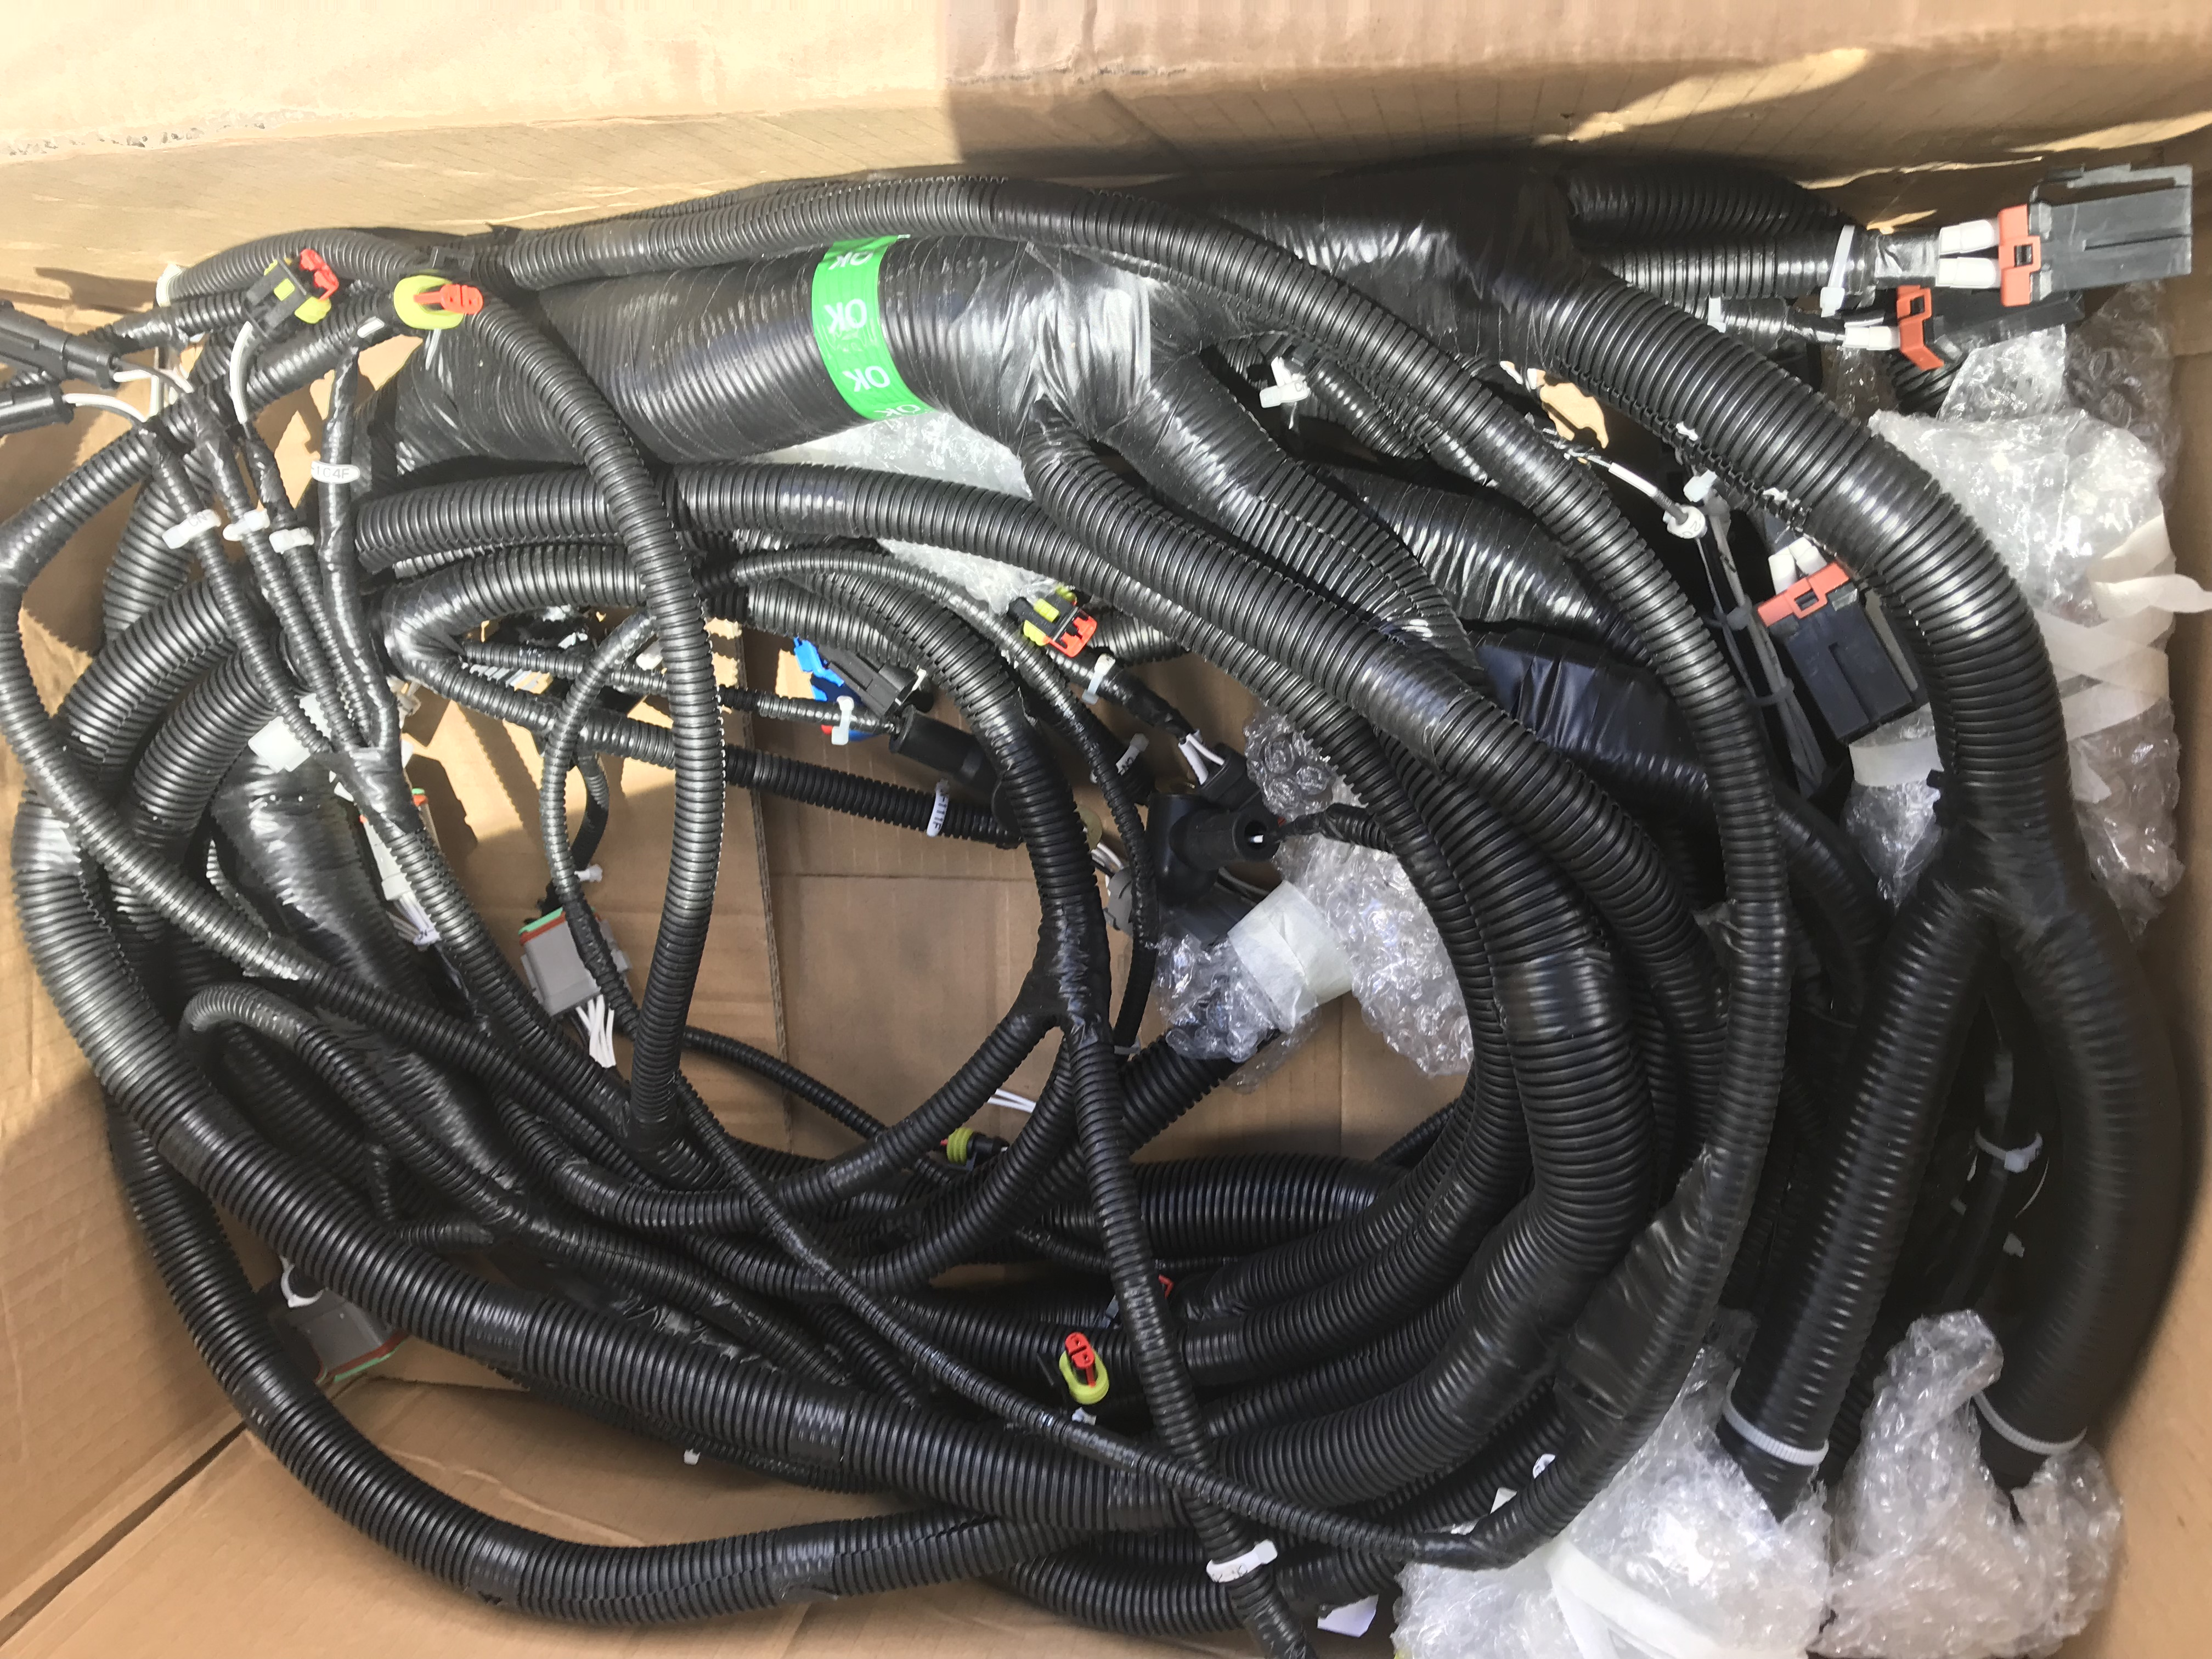 Sany Excavator, wiring harness